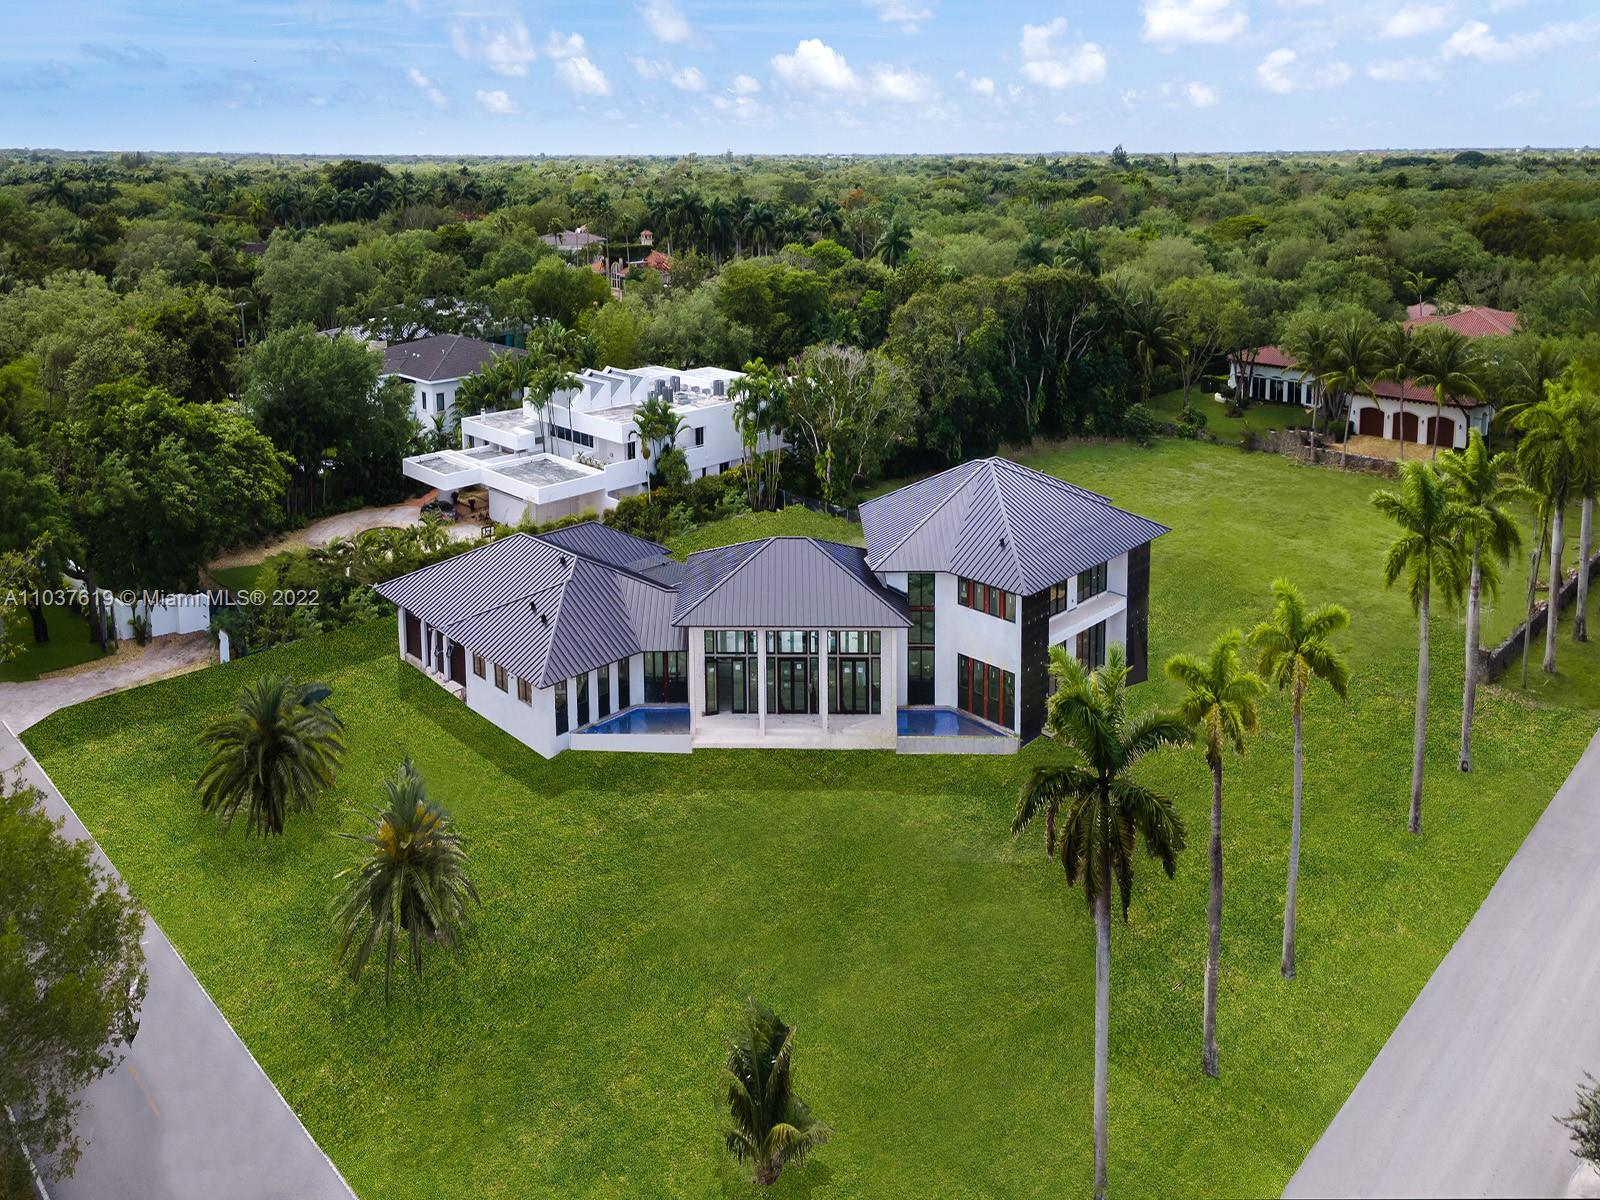 This gracious new-built residence, sprawling across a generous property in the heart of Miami's prestigious Village of Pinecrest, is slated for completion in the fall of 2021, with all the features of an aristocratic subtropical villa and the luxuries of a modern estate. At the center of the almost 8,000 square-foot home is the vaulted Great Room, surrounded by family areas, a pool with baja shelf and integrated jacuzzi, and multiple covered terraces, embracing the very Floridian desire for an indoor-outdoor lifestyle. The eight bedrooms, all with an ensuite bath and walk-in closet, include a maid's room and lavish master suite that includes an oasis-like bath and dressing room. Outside, the 34,863 square foot estate gives you plenty of room to play with.